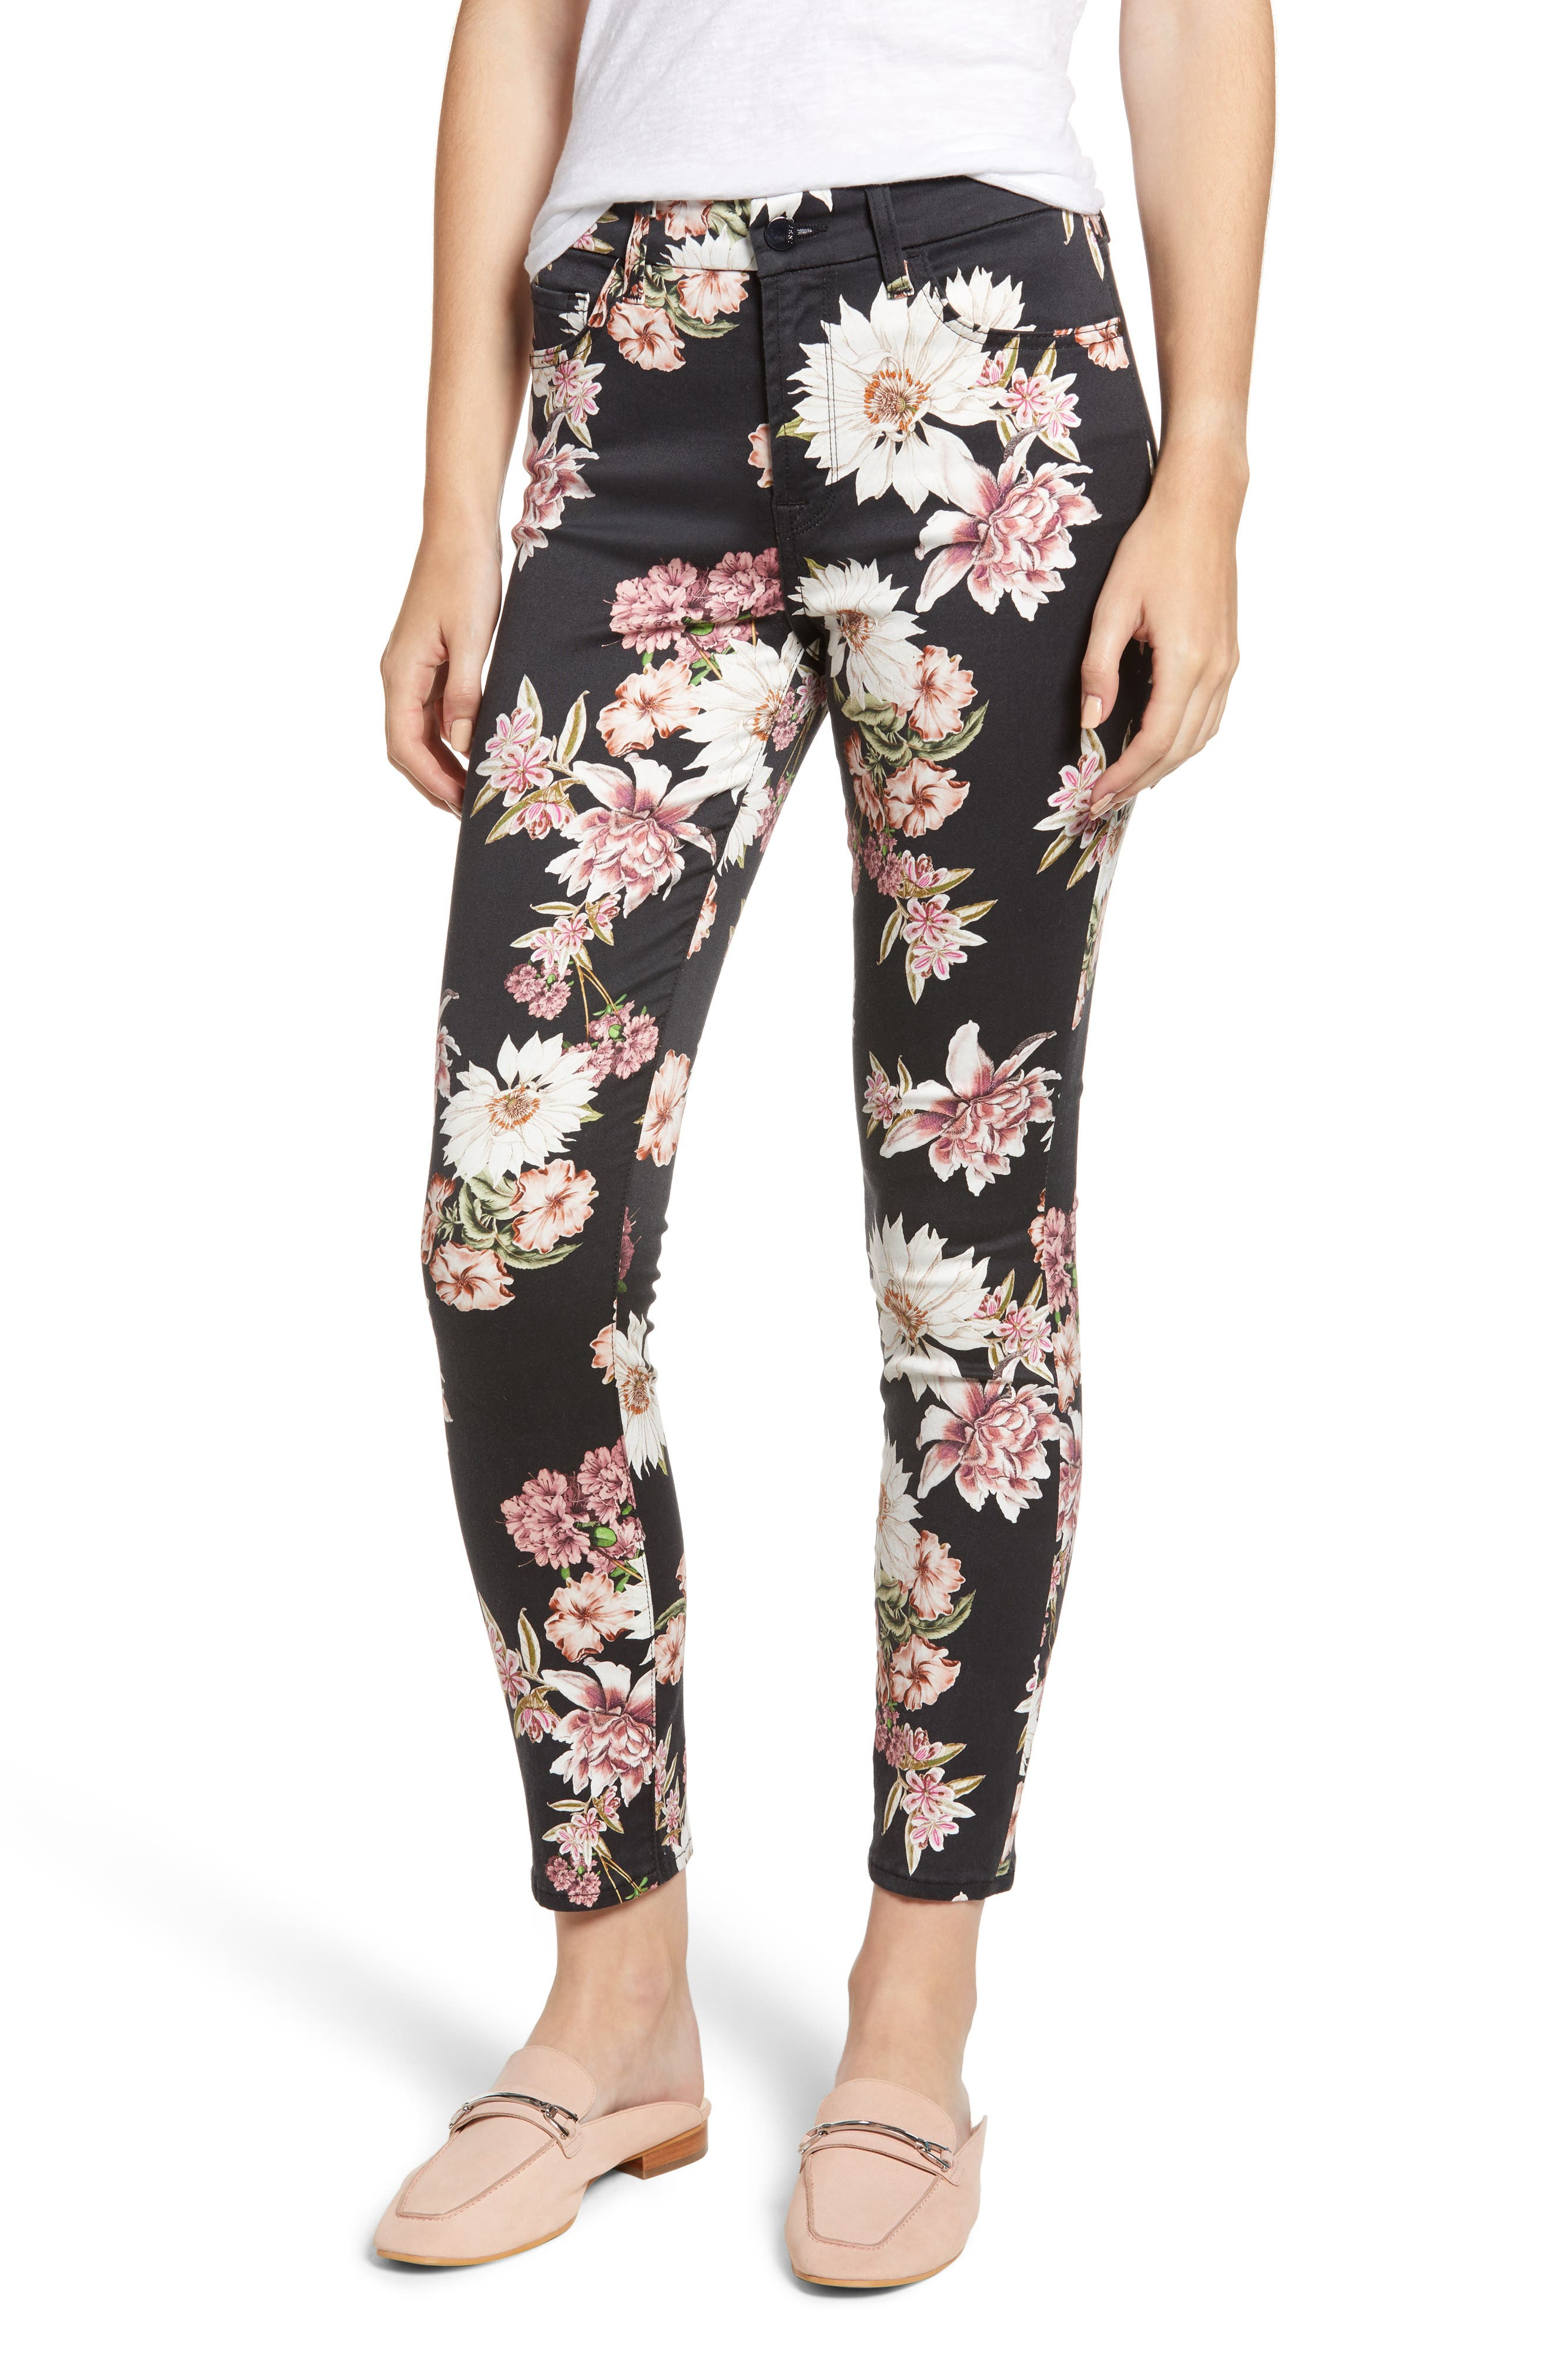 JEN7 BY 7 FOR ALL MANKIND Floral Skinny Stretch Cotton Ankle Pants in Night Garden